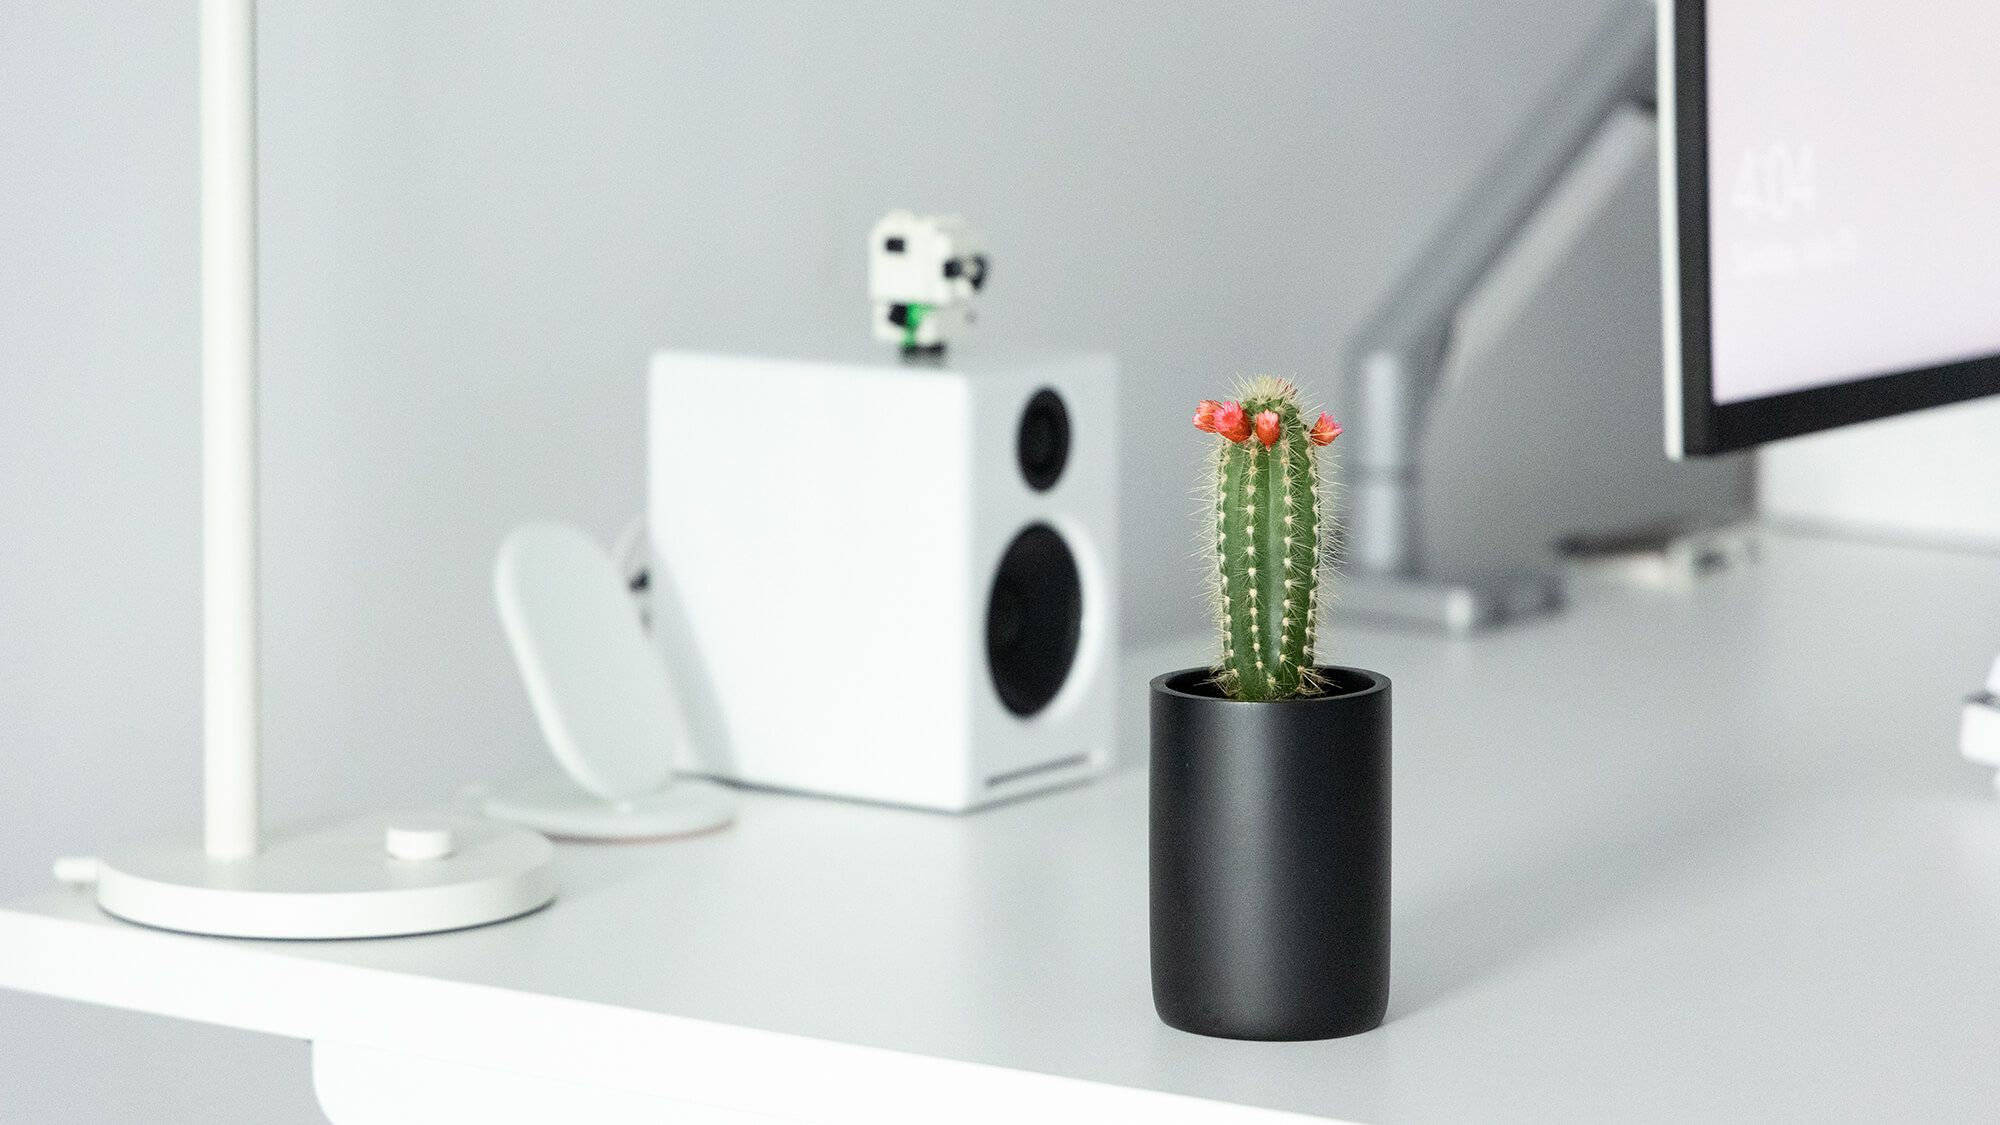 Bogdan bought Gioni in a construction store. He was picky about the colour, the shape, and the size, so it took him a while to find the perfect cactus